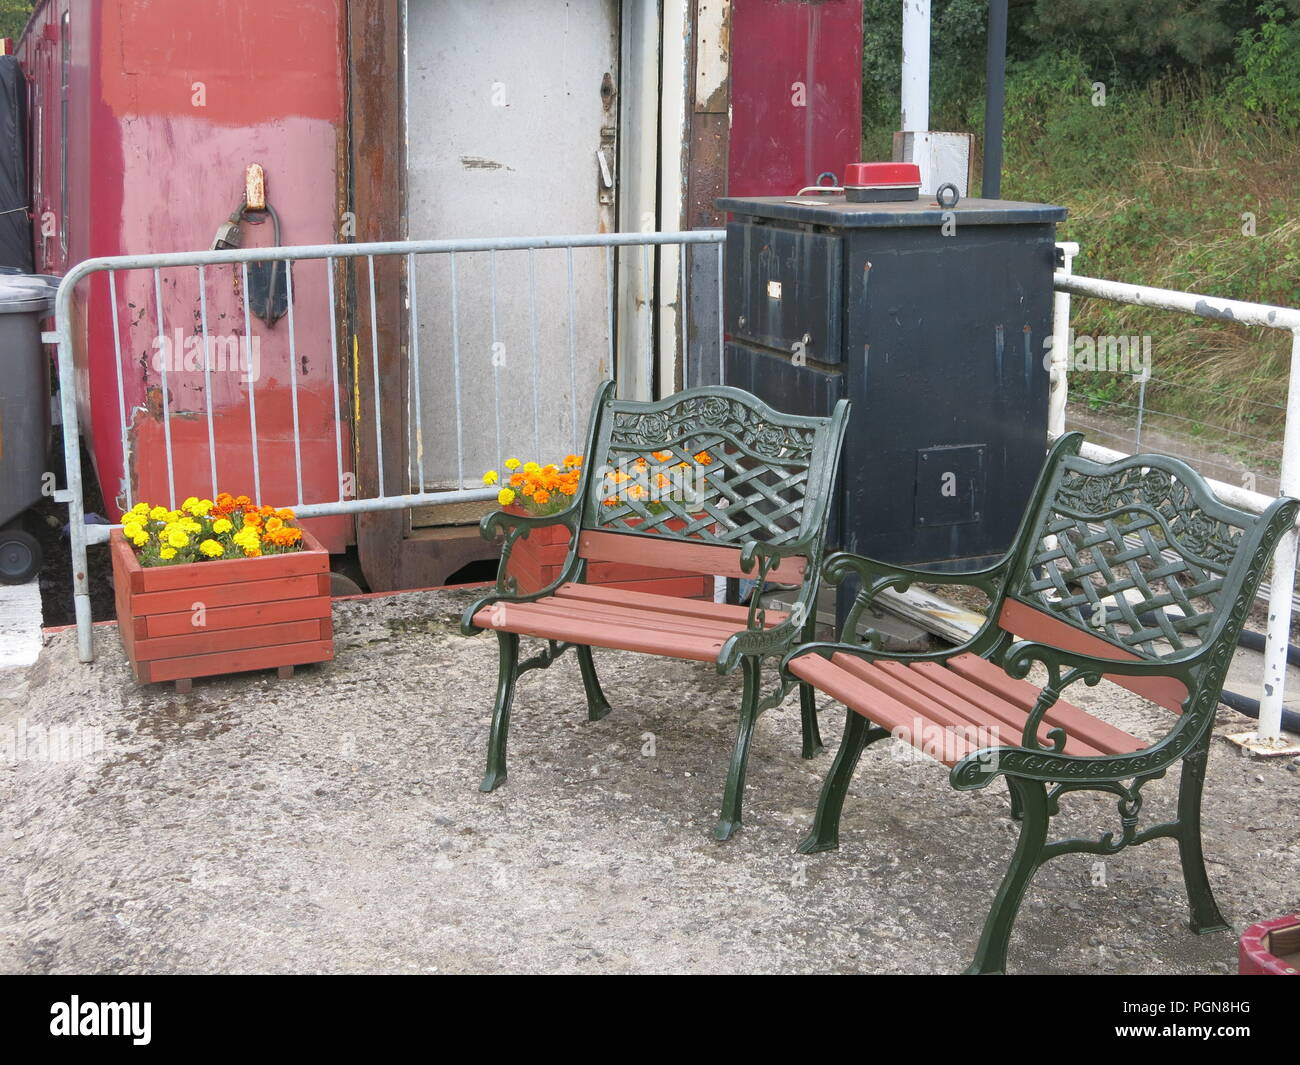 Old-fashioned seats and trolleys of old suitcases add to the atmosphere of a bygone era on the platform at the Northampton & Lamport Heritage Railway - Stock Image